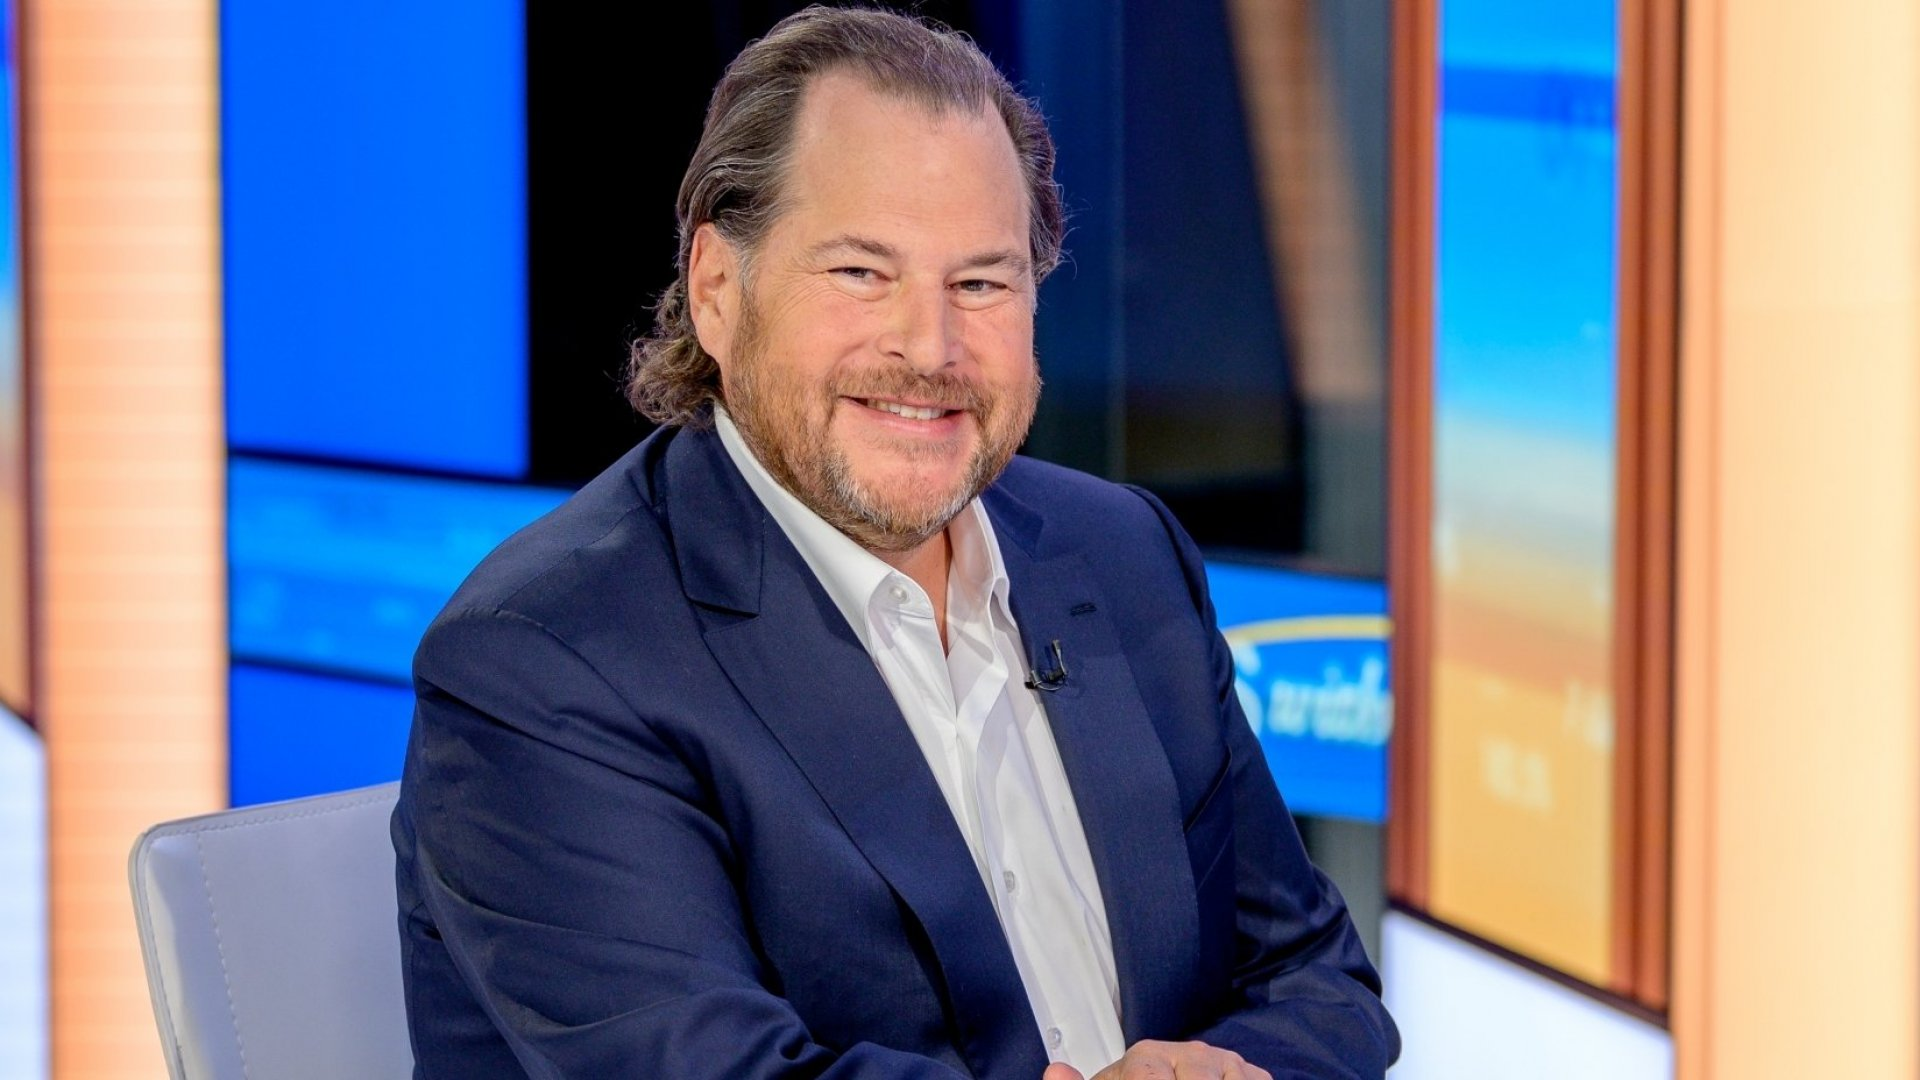 This Salesforce CEO Felt Stuck. Here Is the Business Advice Steve Jobs Gave Him That Changed Everything